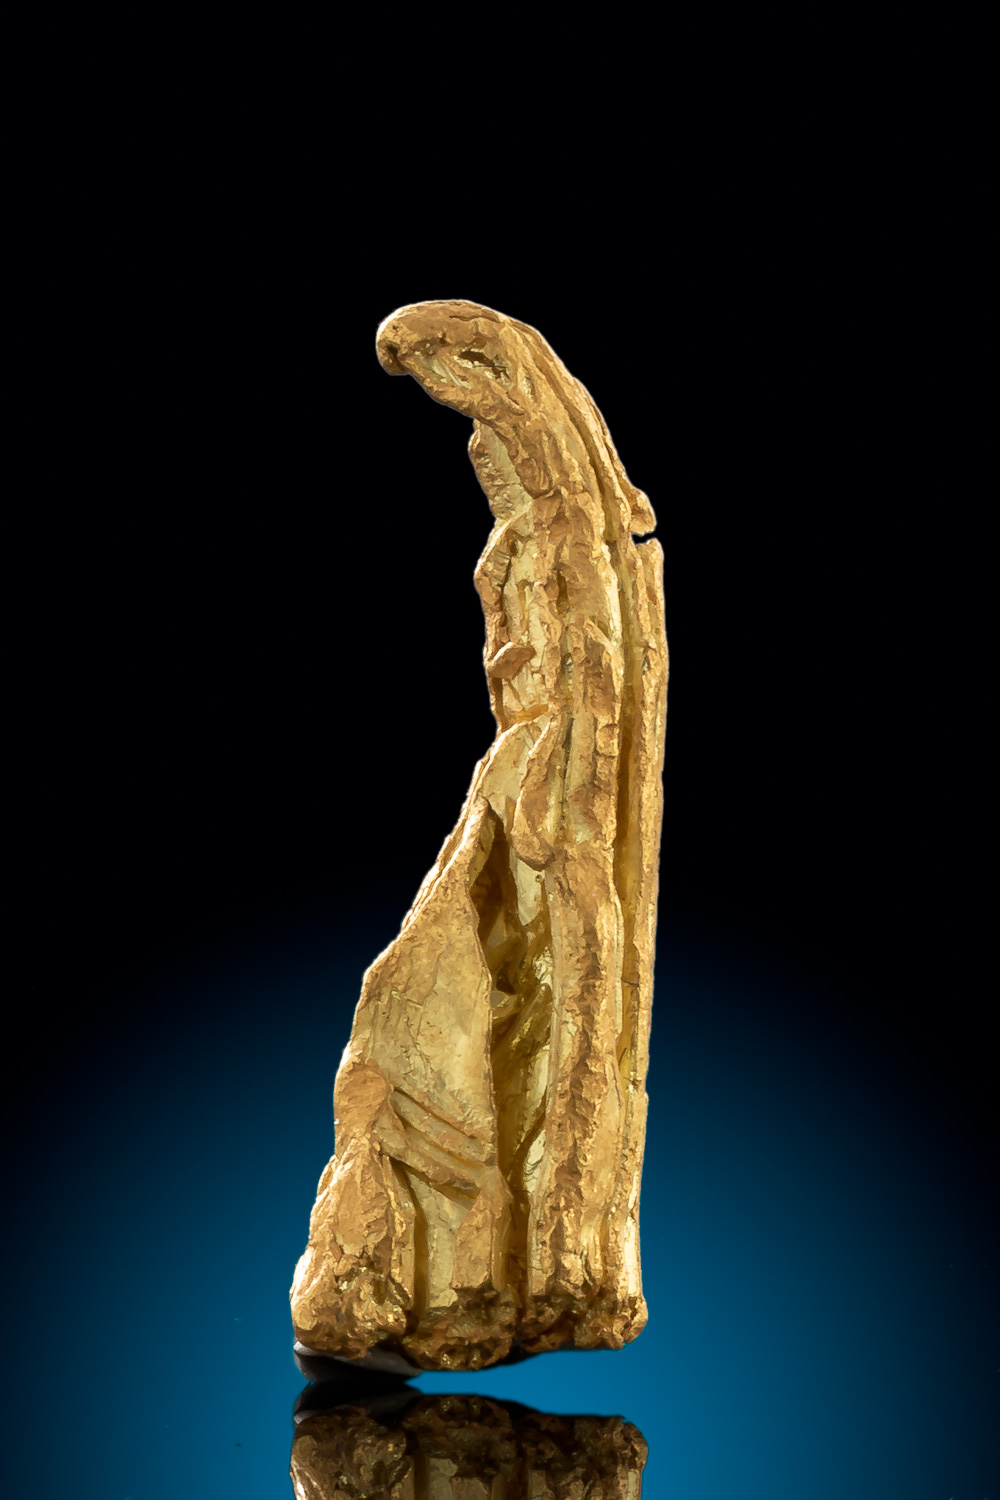 Rare - Long and Striated Gold Nugget from Alaska